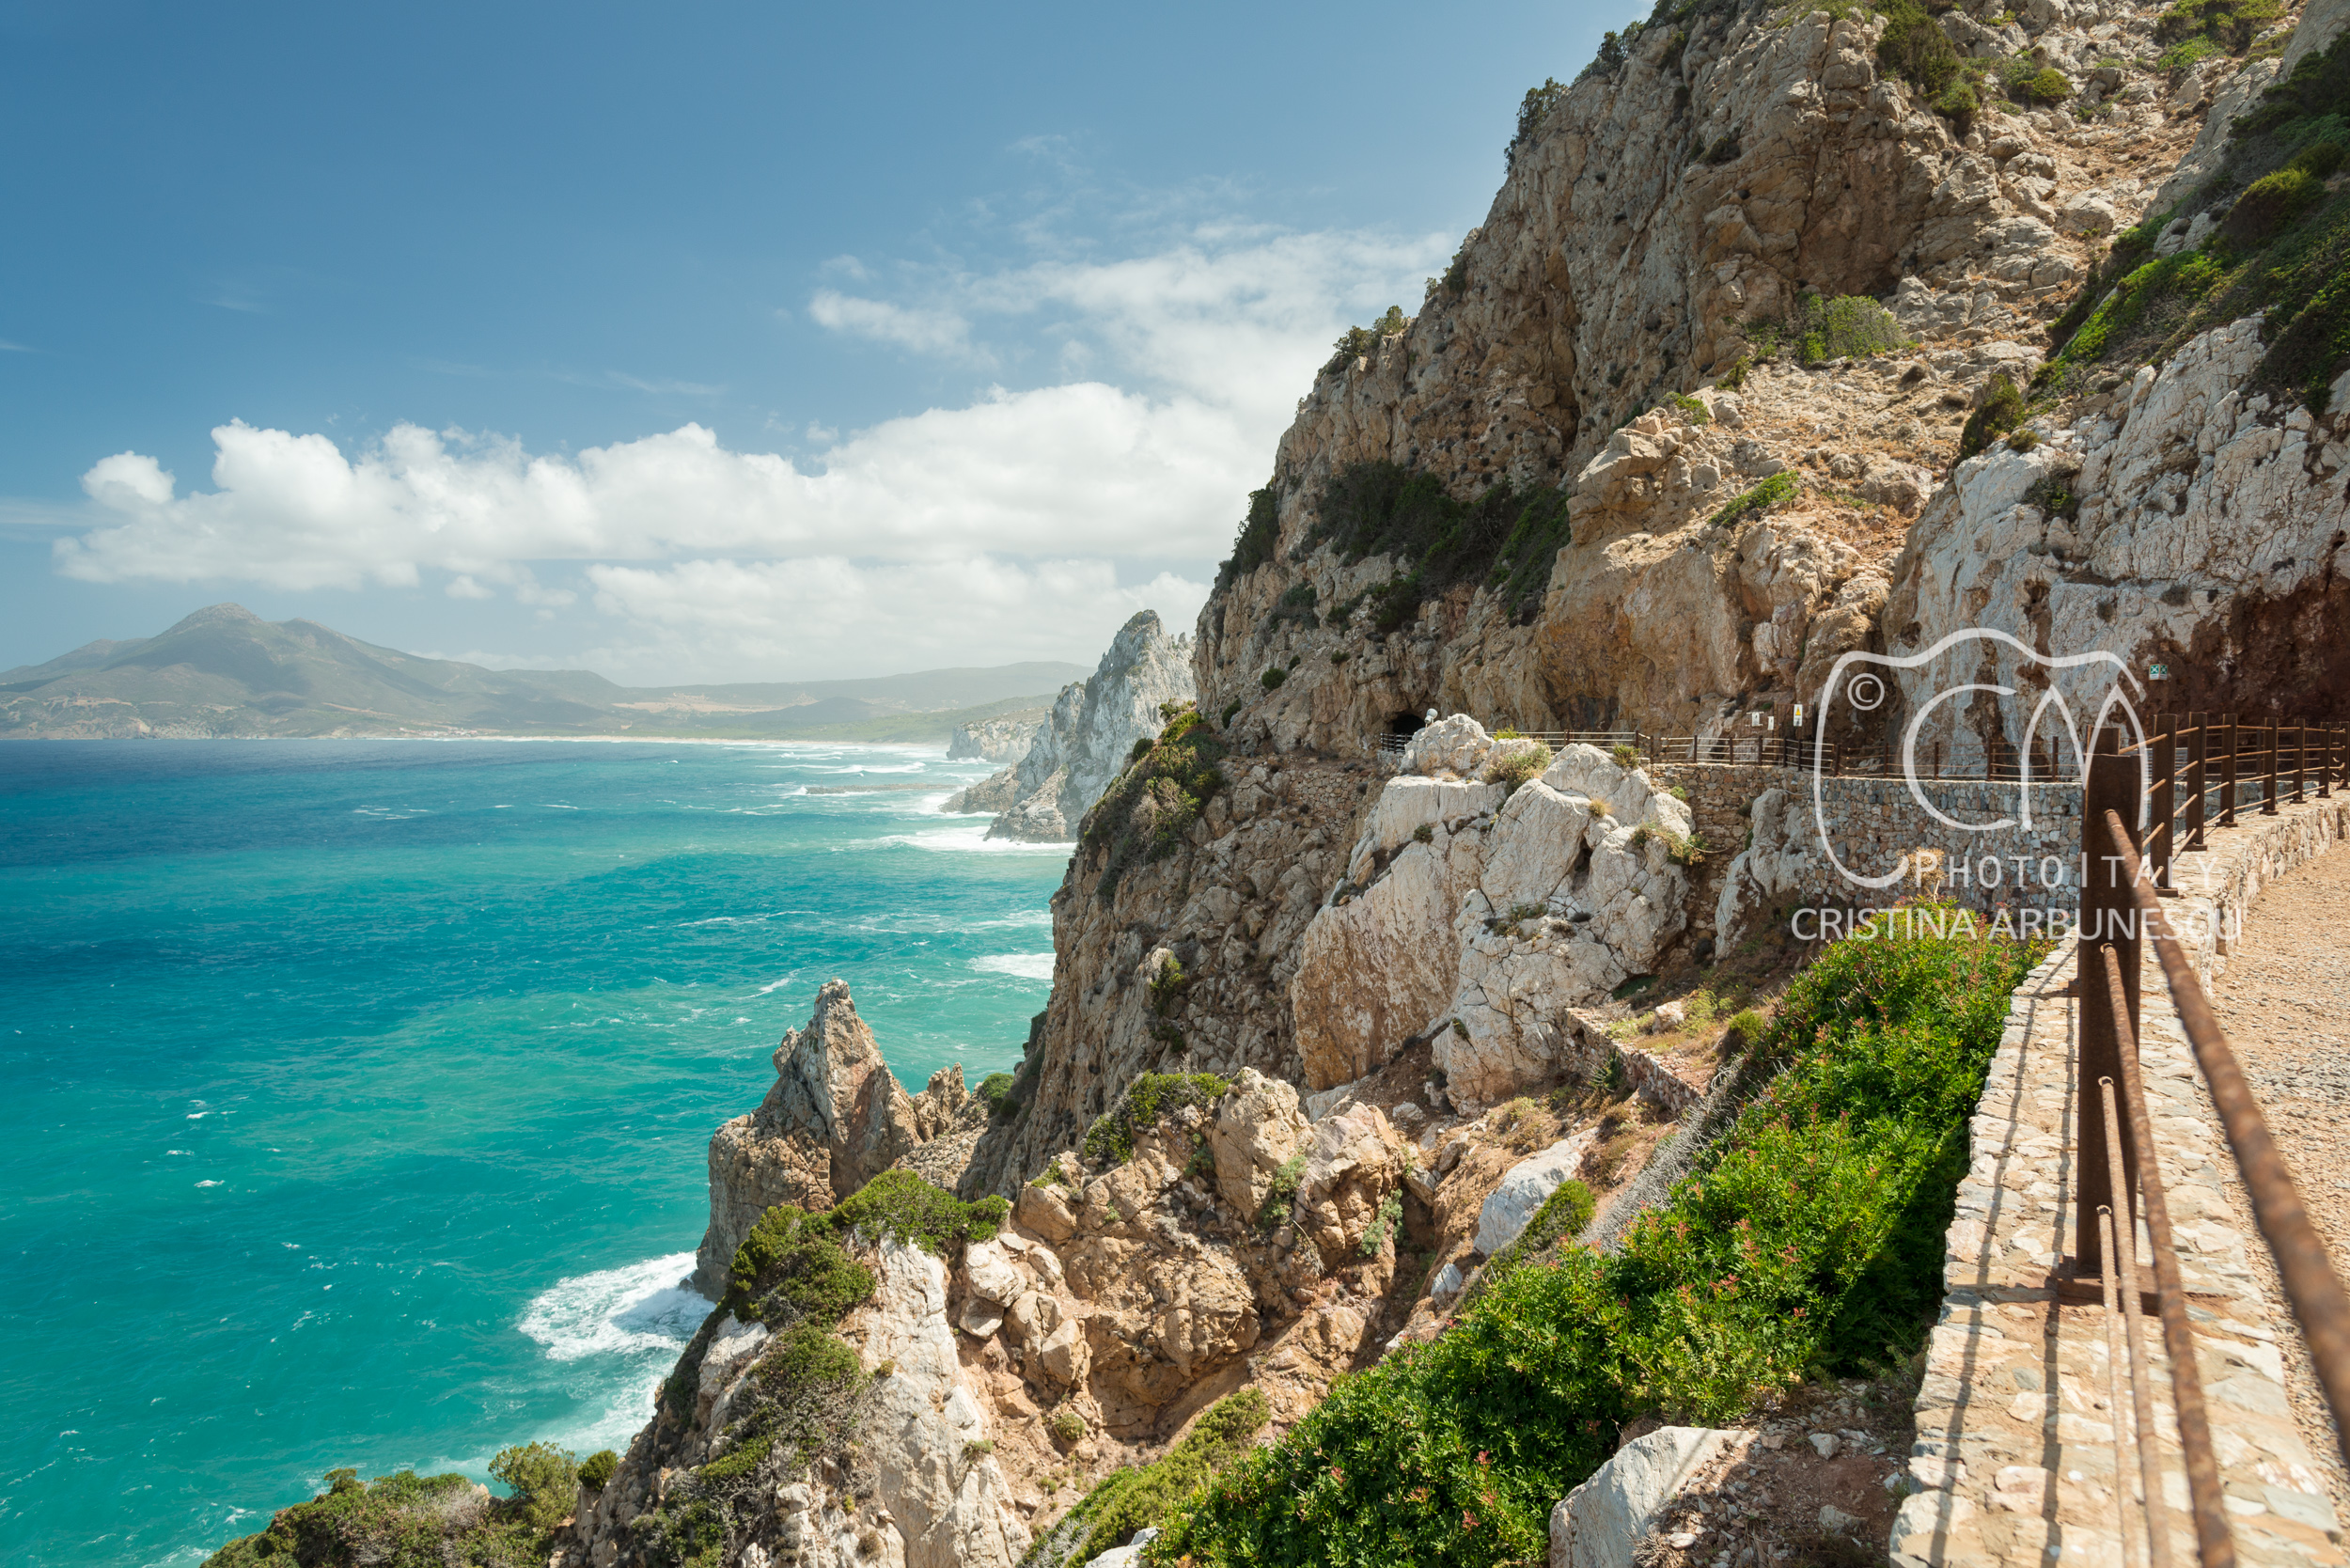 View from the old mine of Buggerru, Galleria Henry, Sardegna